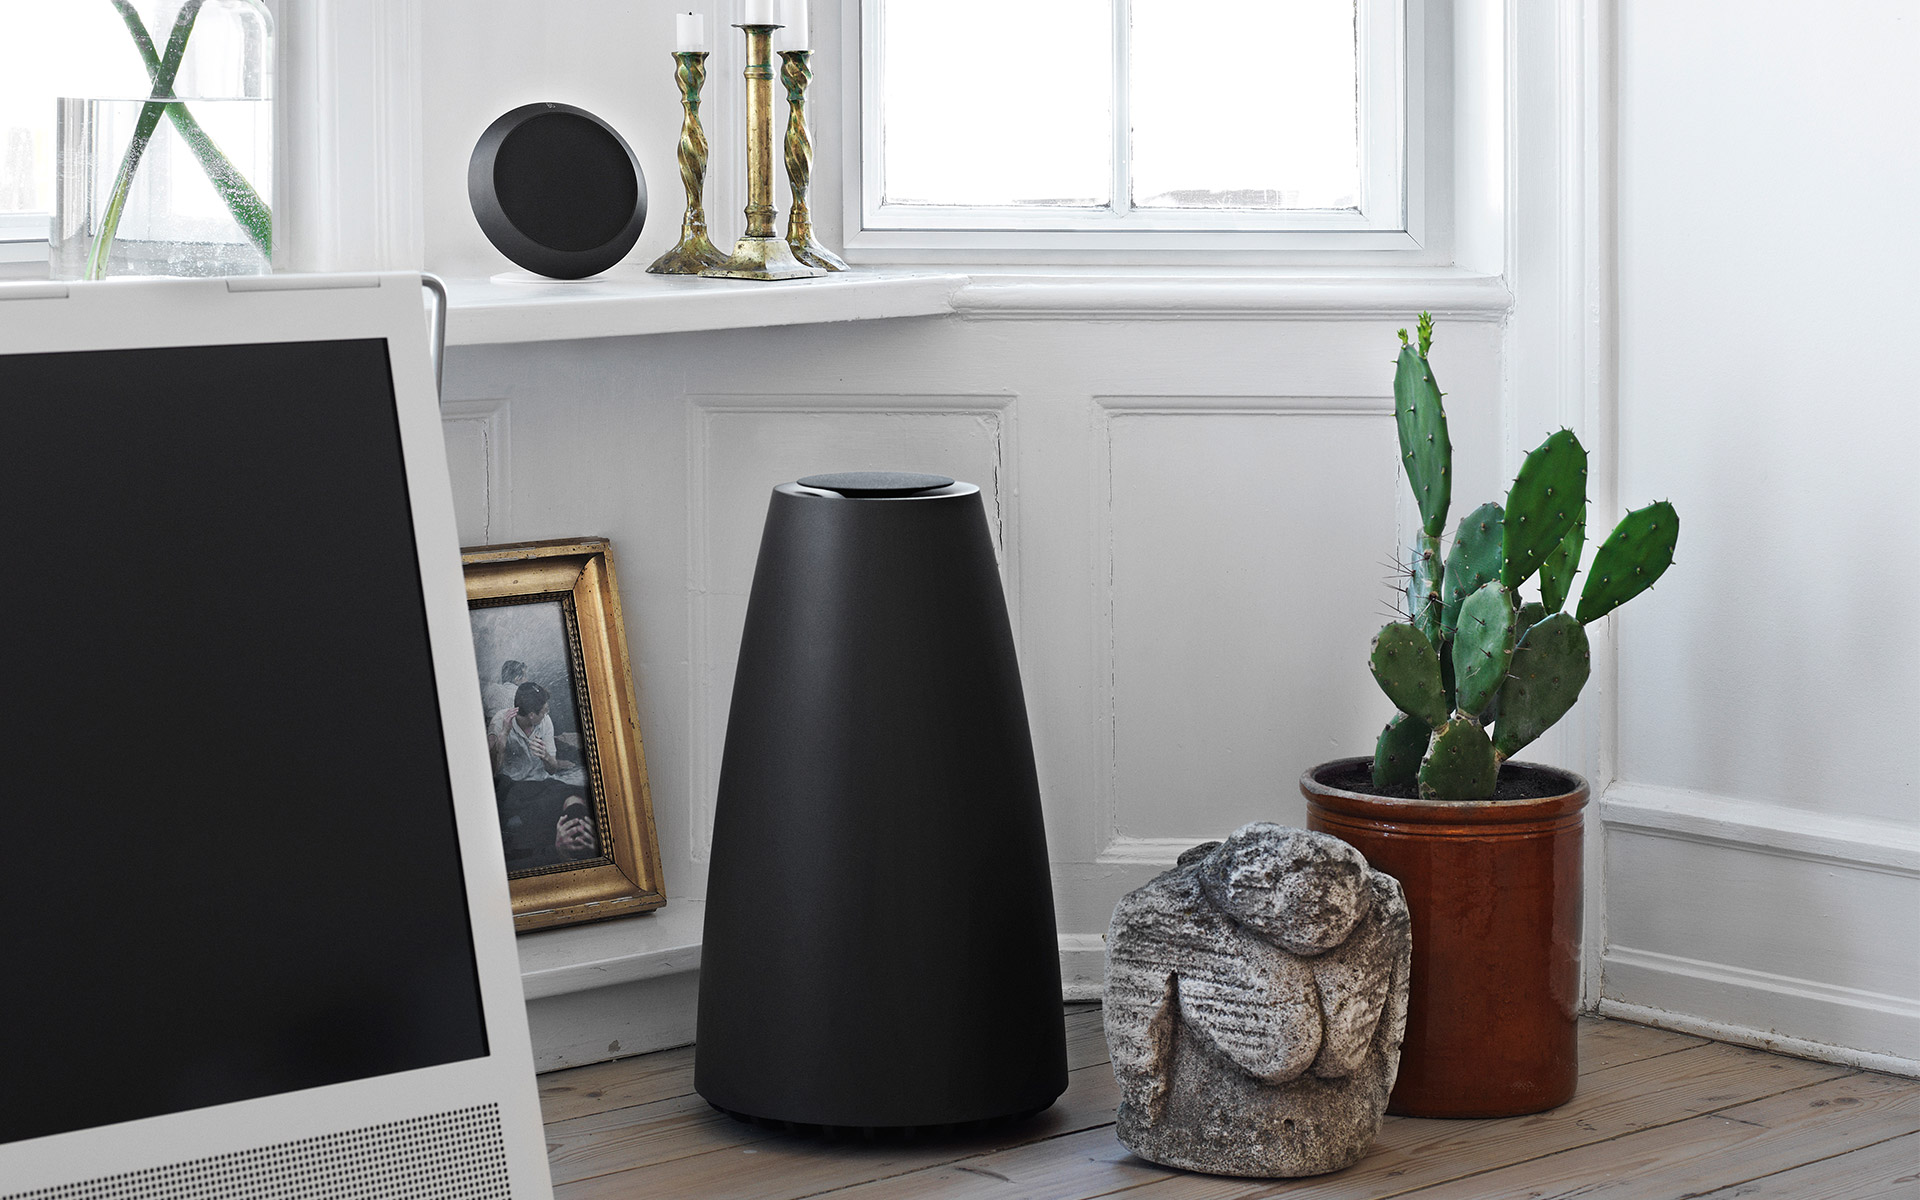 b o play beoplay s8 expands bang olufsen 39 s speaker. Black Bedroom Furniture Sets. Home Design Ideas